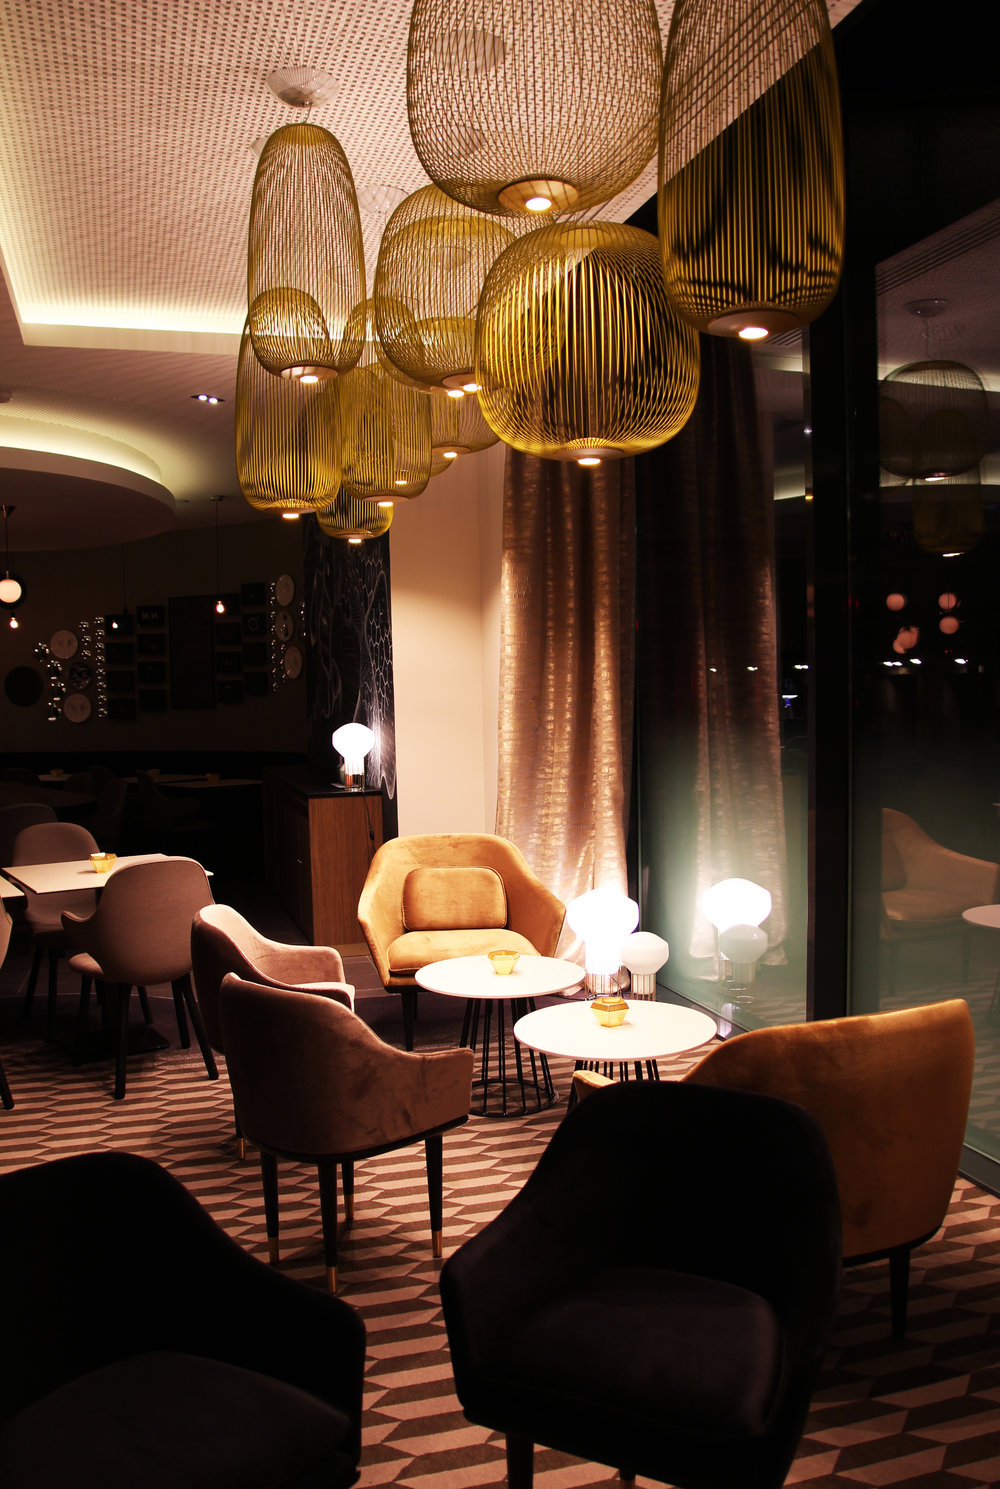 The Lounge - Chill out under the lighting cages // Détente et poésie lumineuse